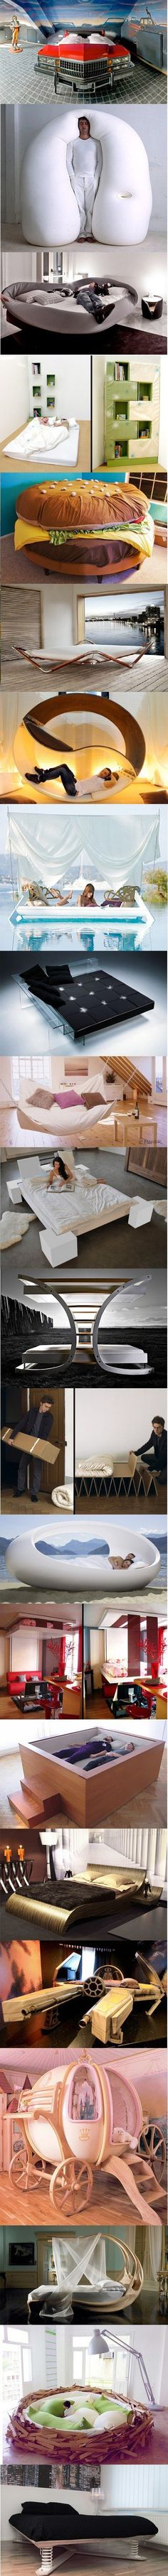 Coolest Beds On the Planet